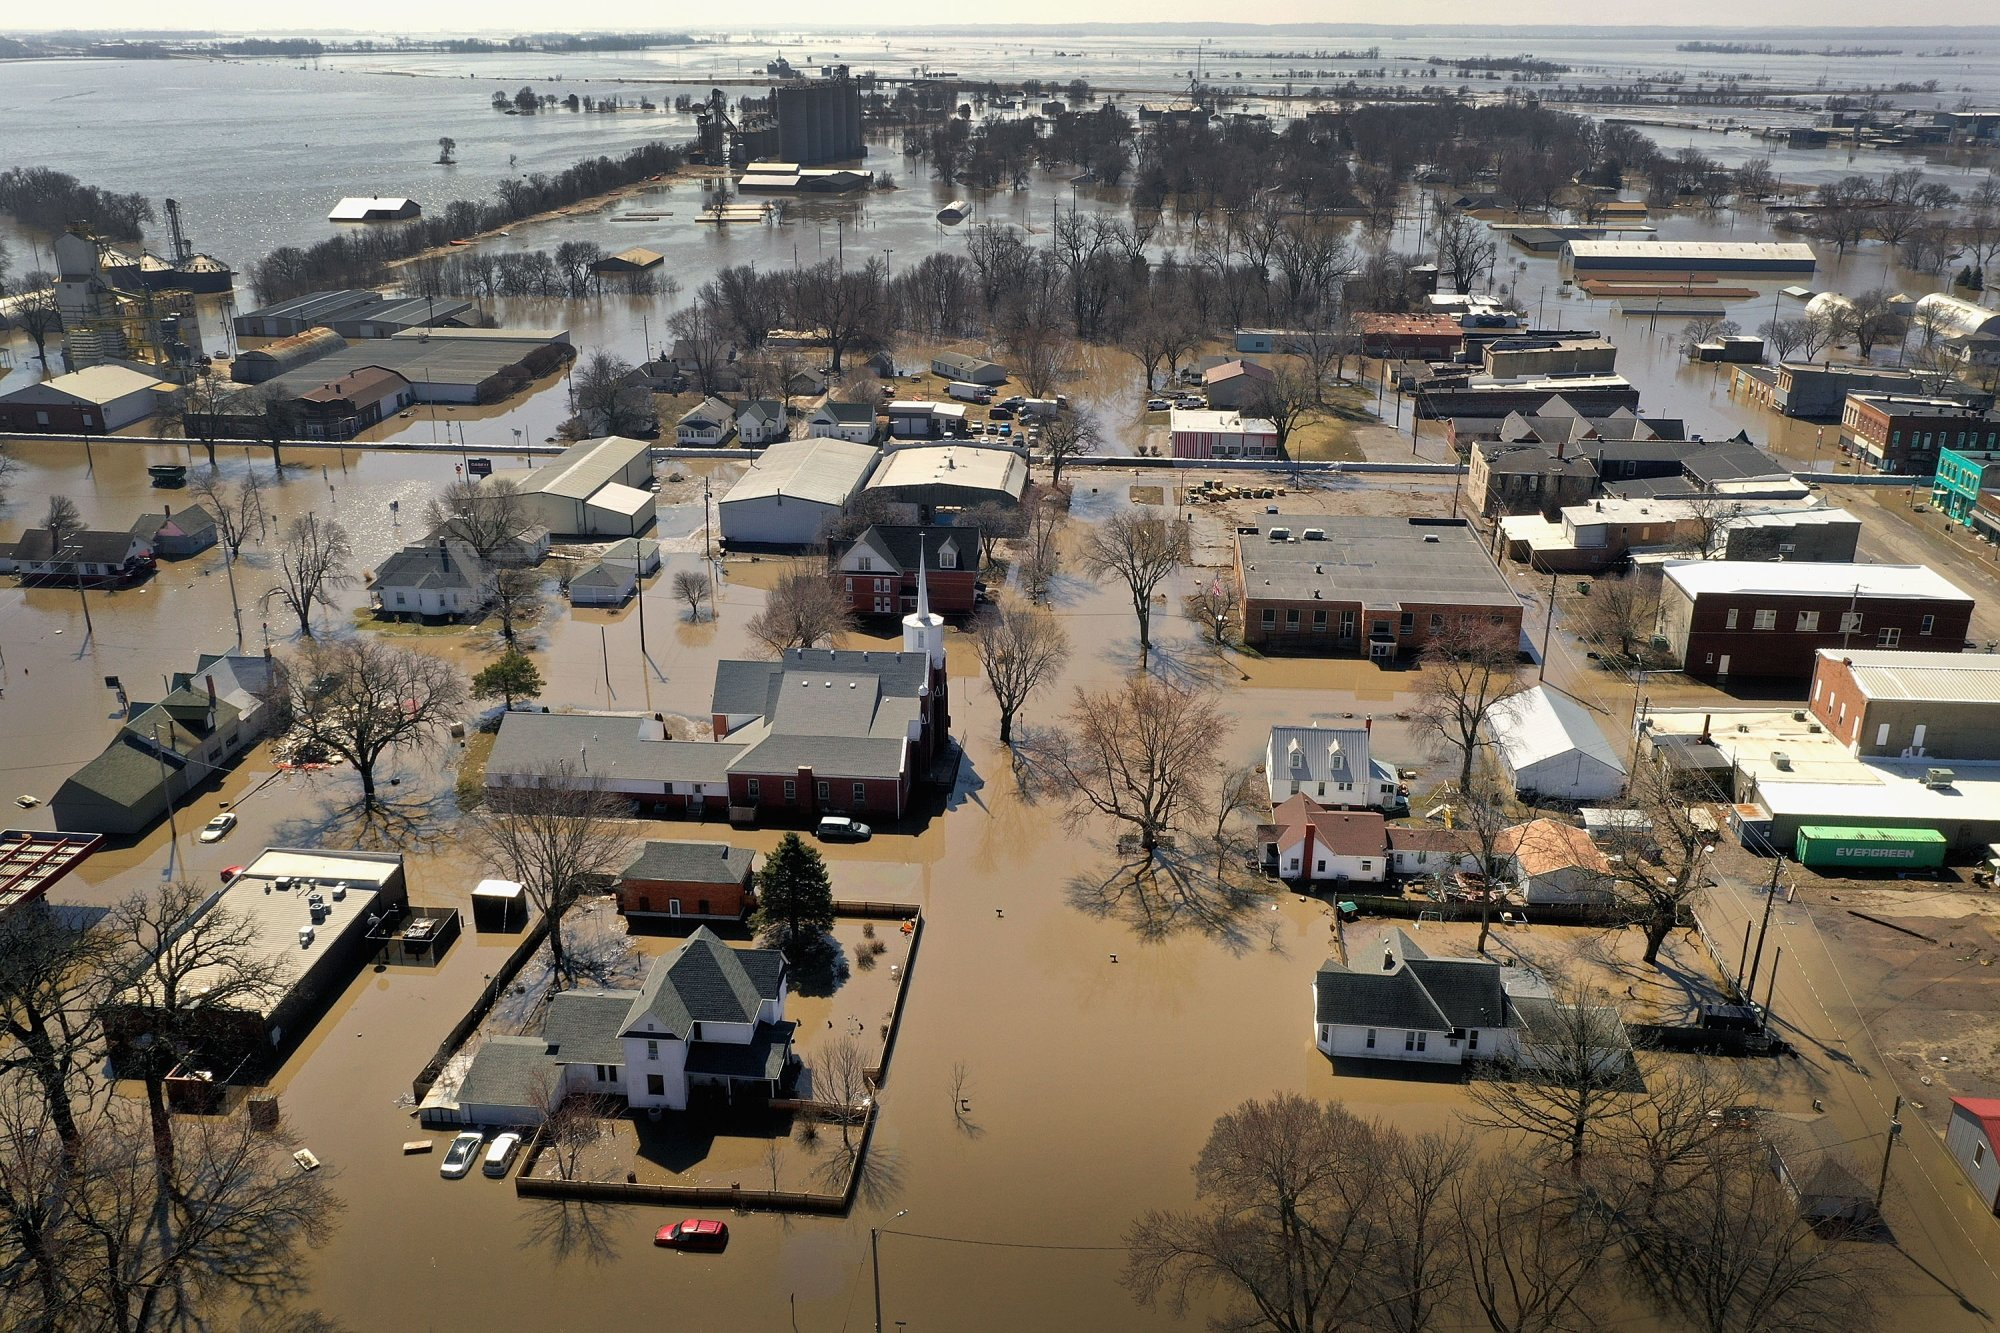 "HAMBURG, IOWA - MARCH 20:  Homes and businesses are surrounded by floodwater on March 20, 2019 in Hamburg, Iowa. Several Midwest states are battling some of the worst flooding they have experienced in decades as rain and snow melt from the recent ""bomb cyclone"" has inundated rivers and streams. At least three deaths have been linked to the flooding.  (Photo by Scott Olson/Getty Images)"